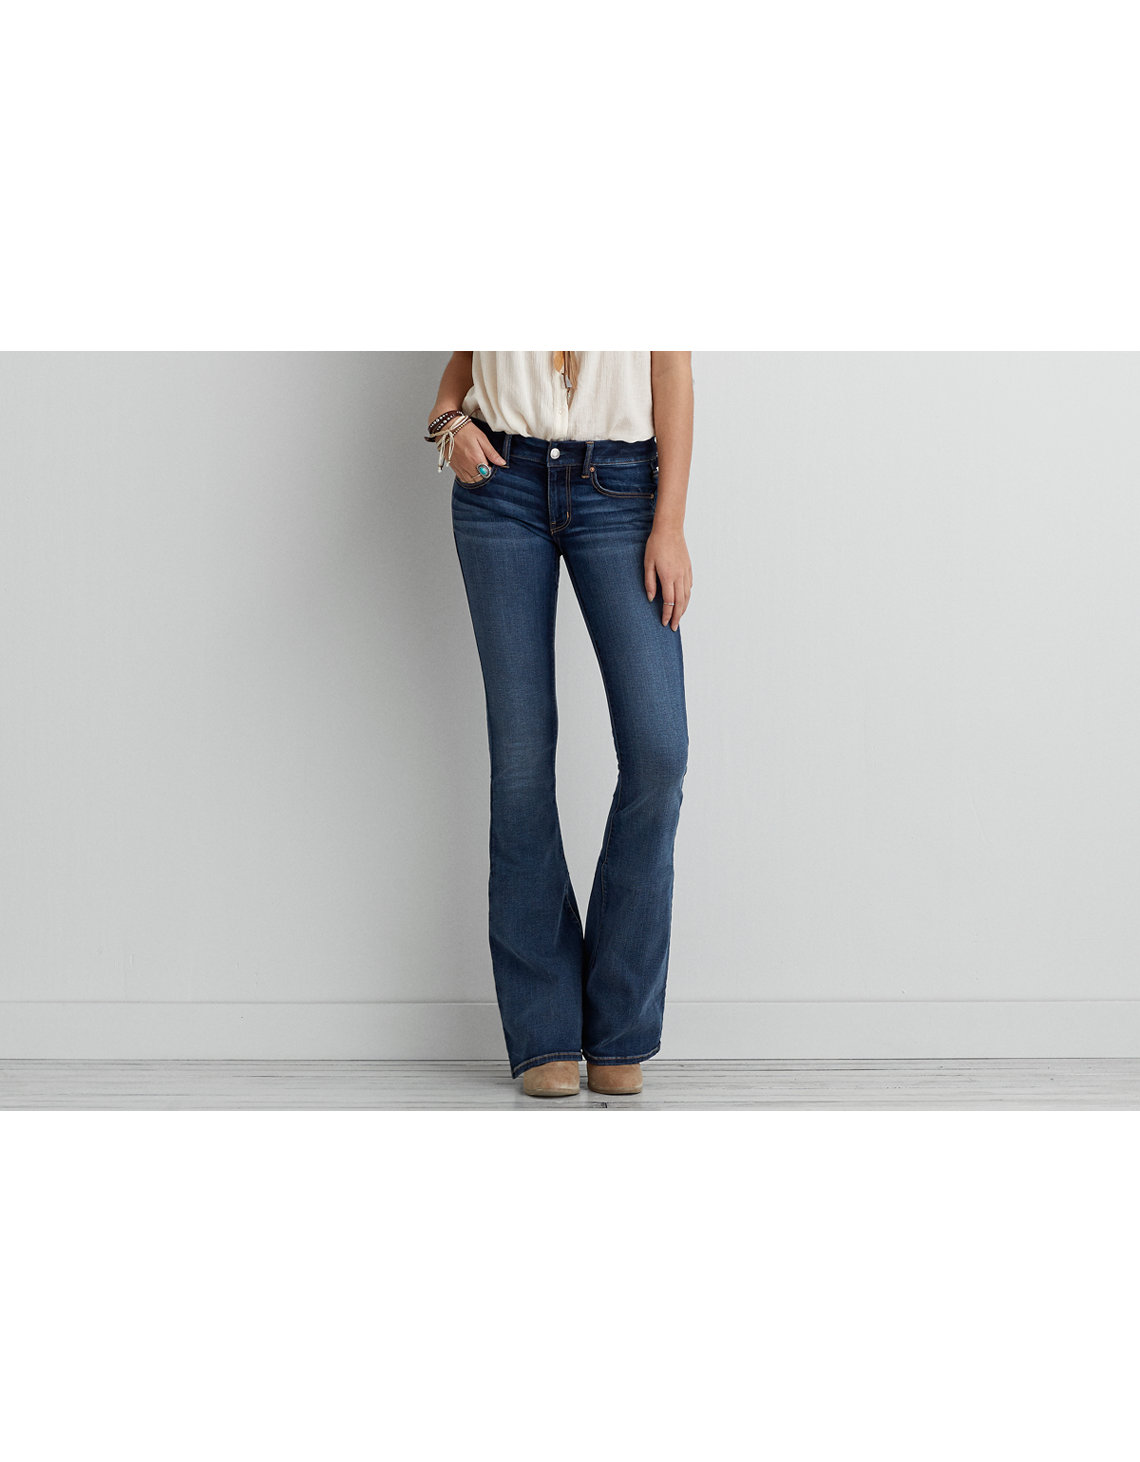 Boho Artist® Flare Jean, Washed Jewel | American Eagle Outfitters